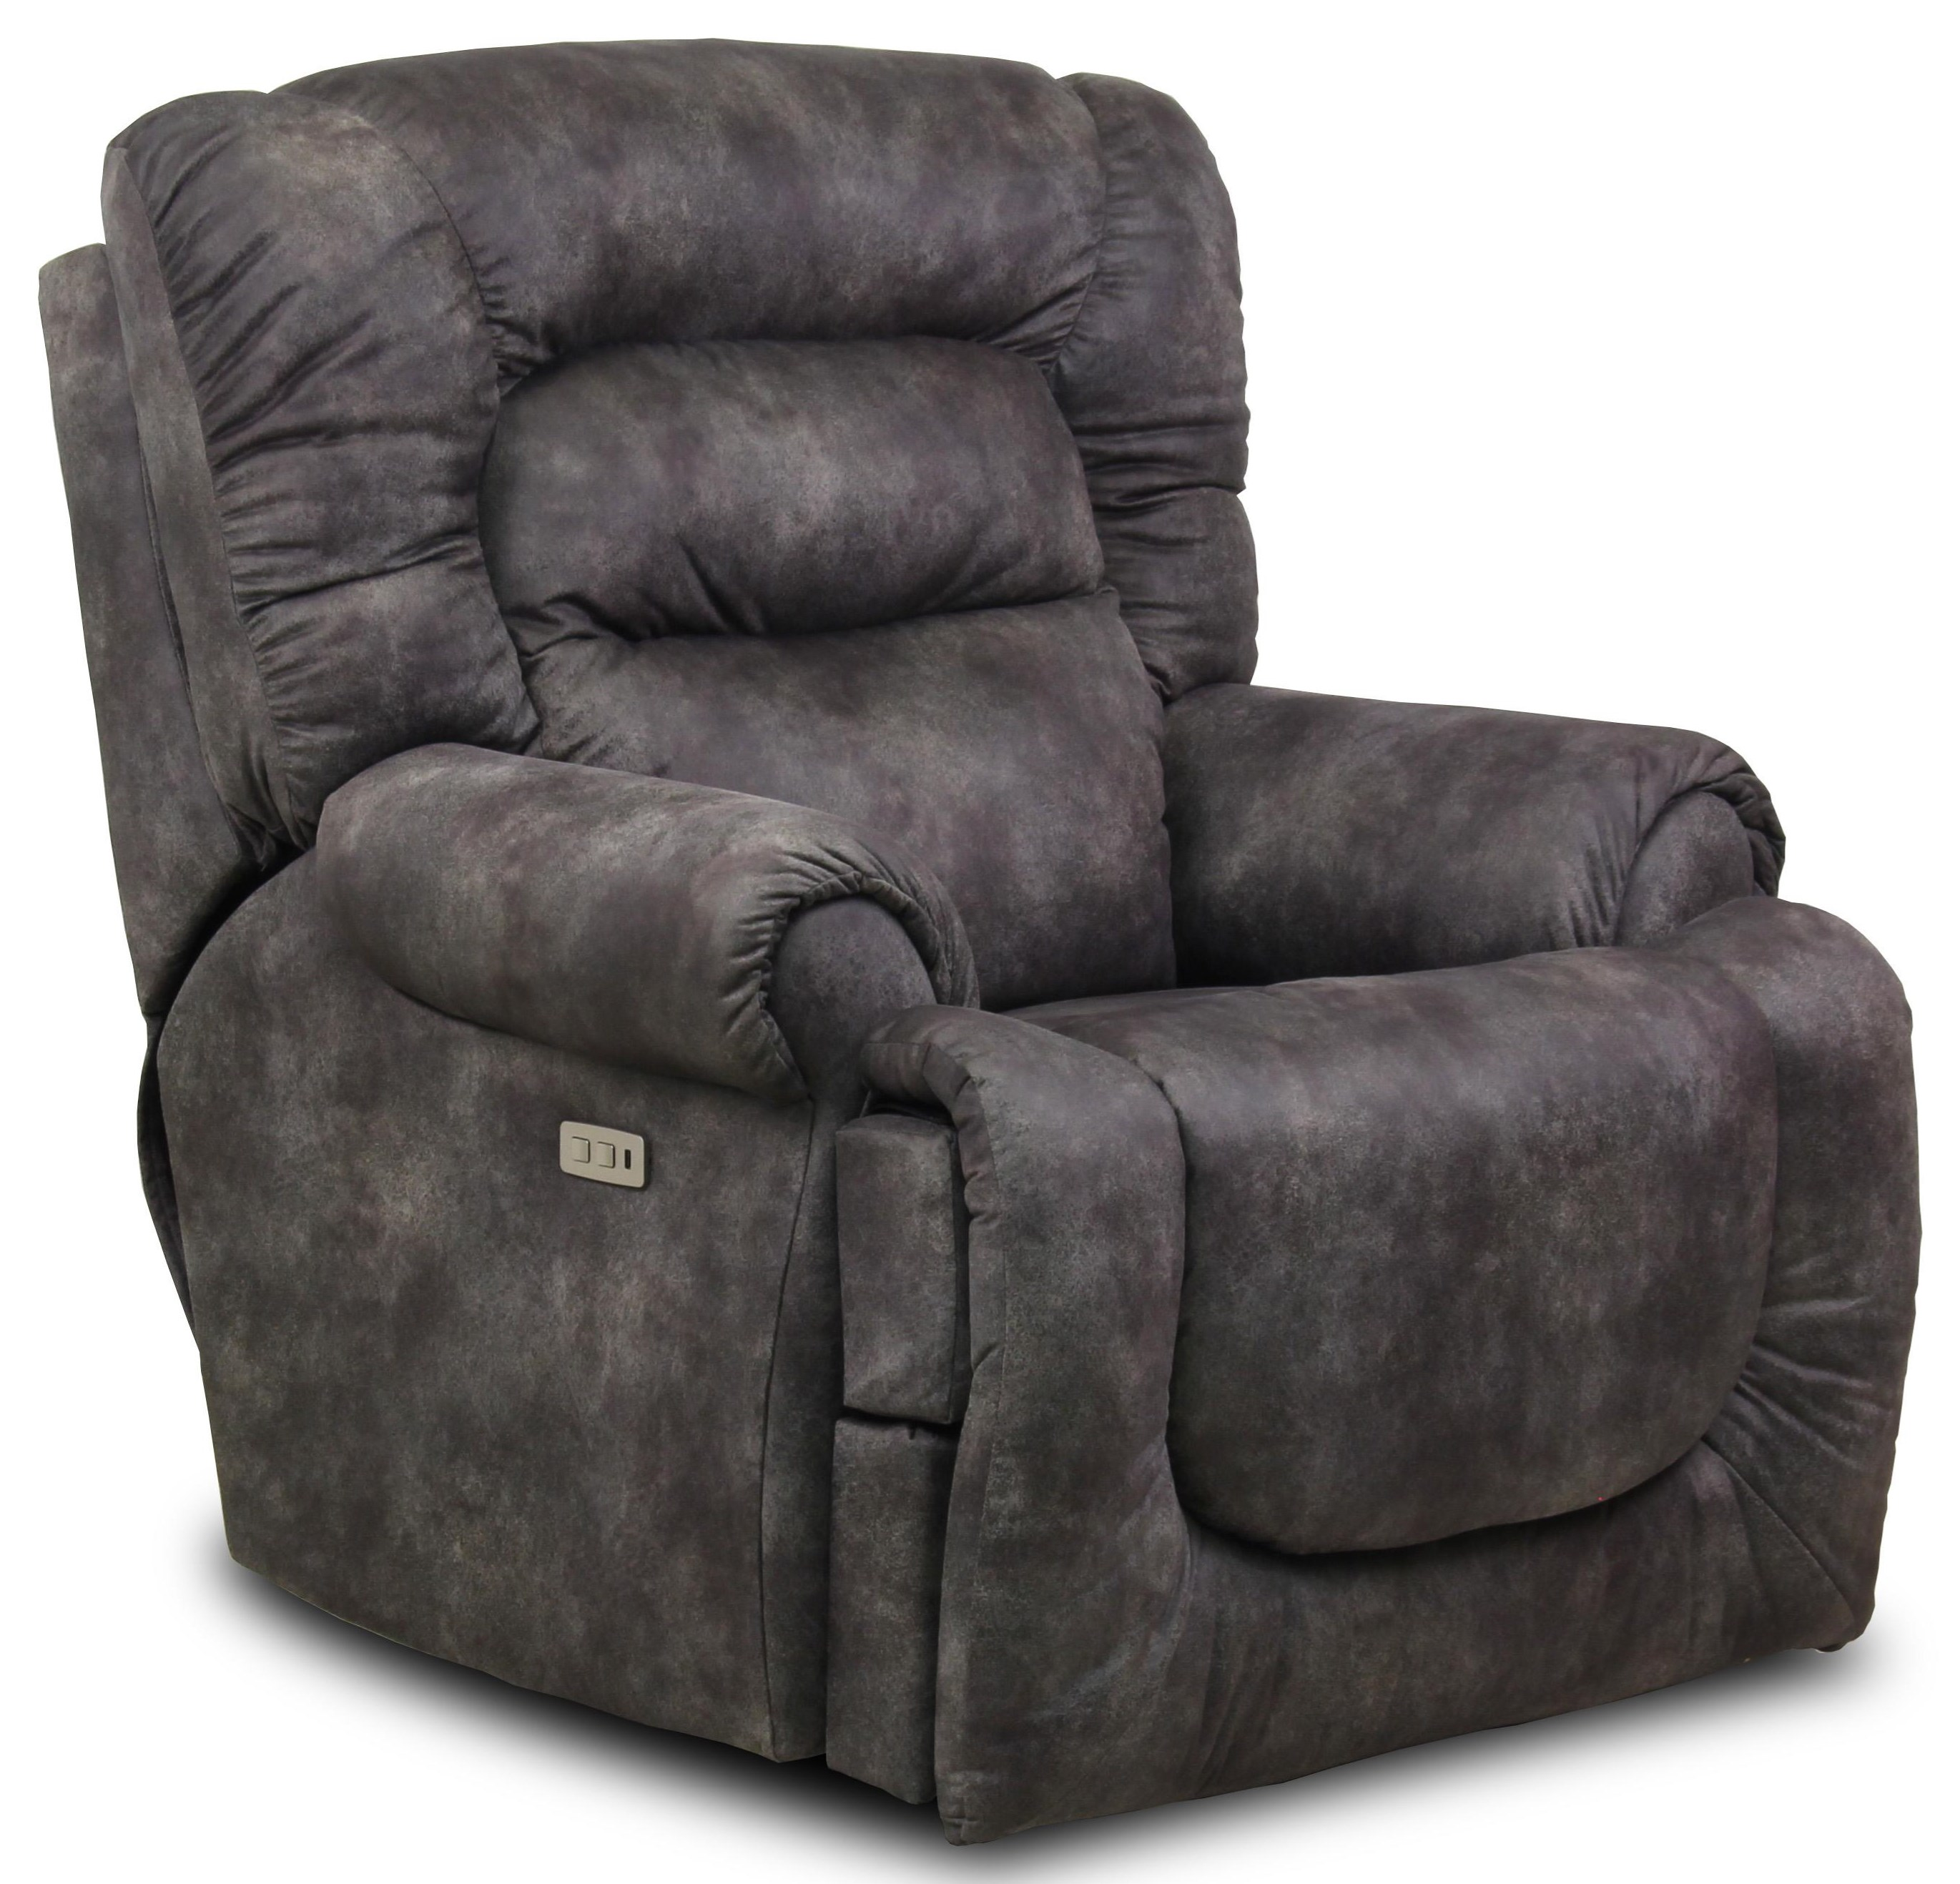 All Star Pwr Headrest Big Man's Wall Hugger Recliner by Southern Motion at Ruby Gordon Home